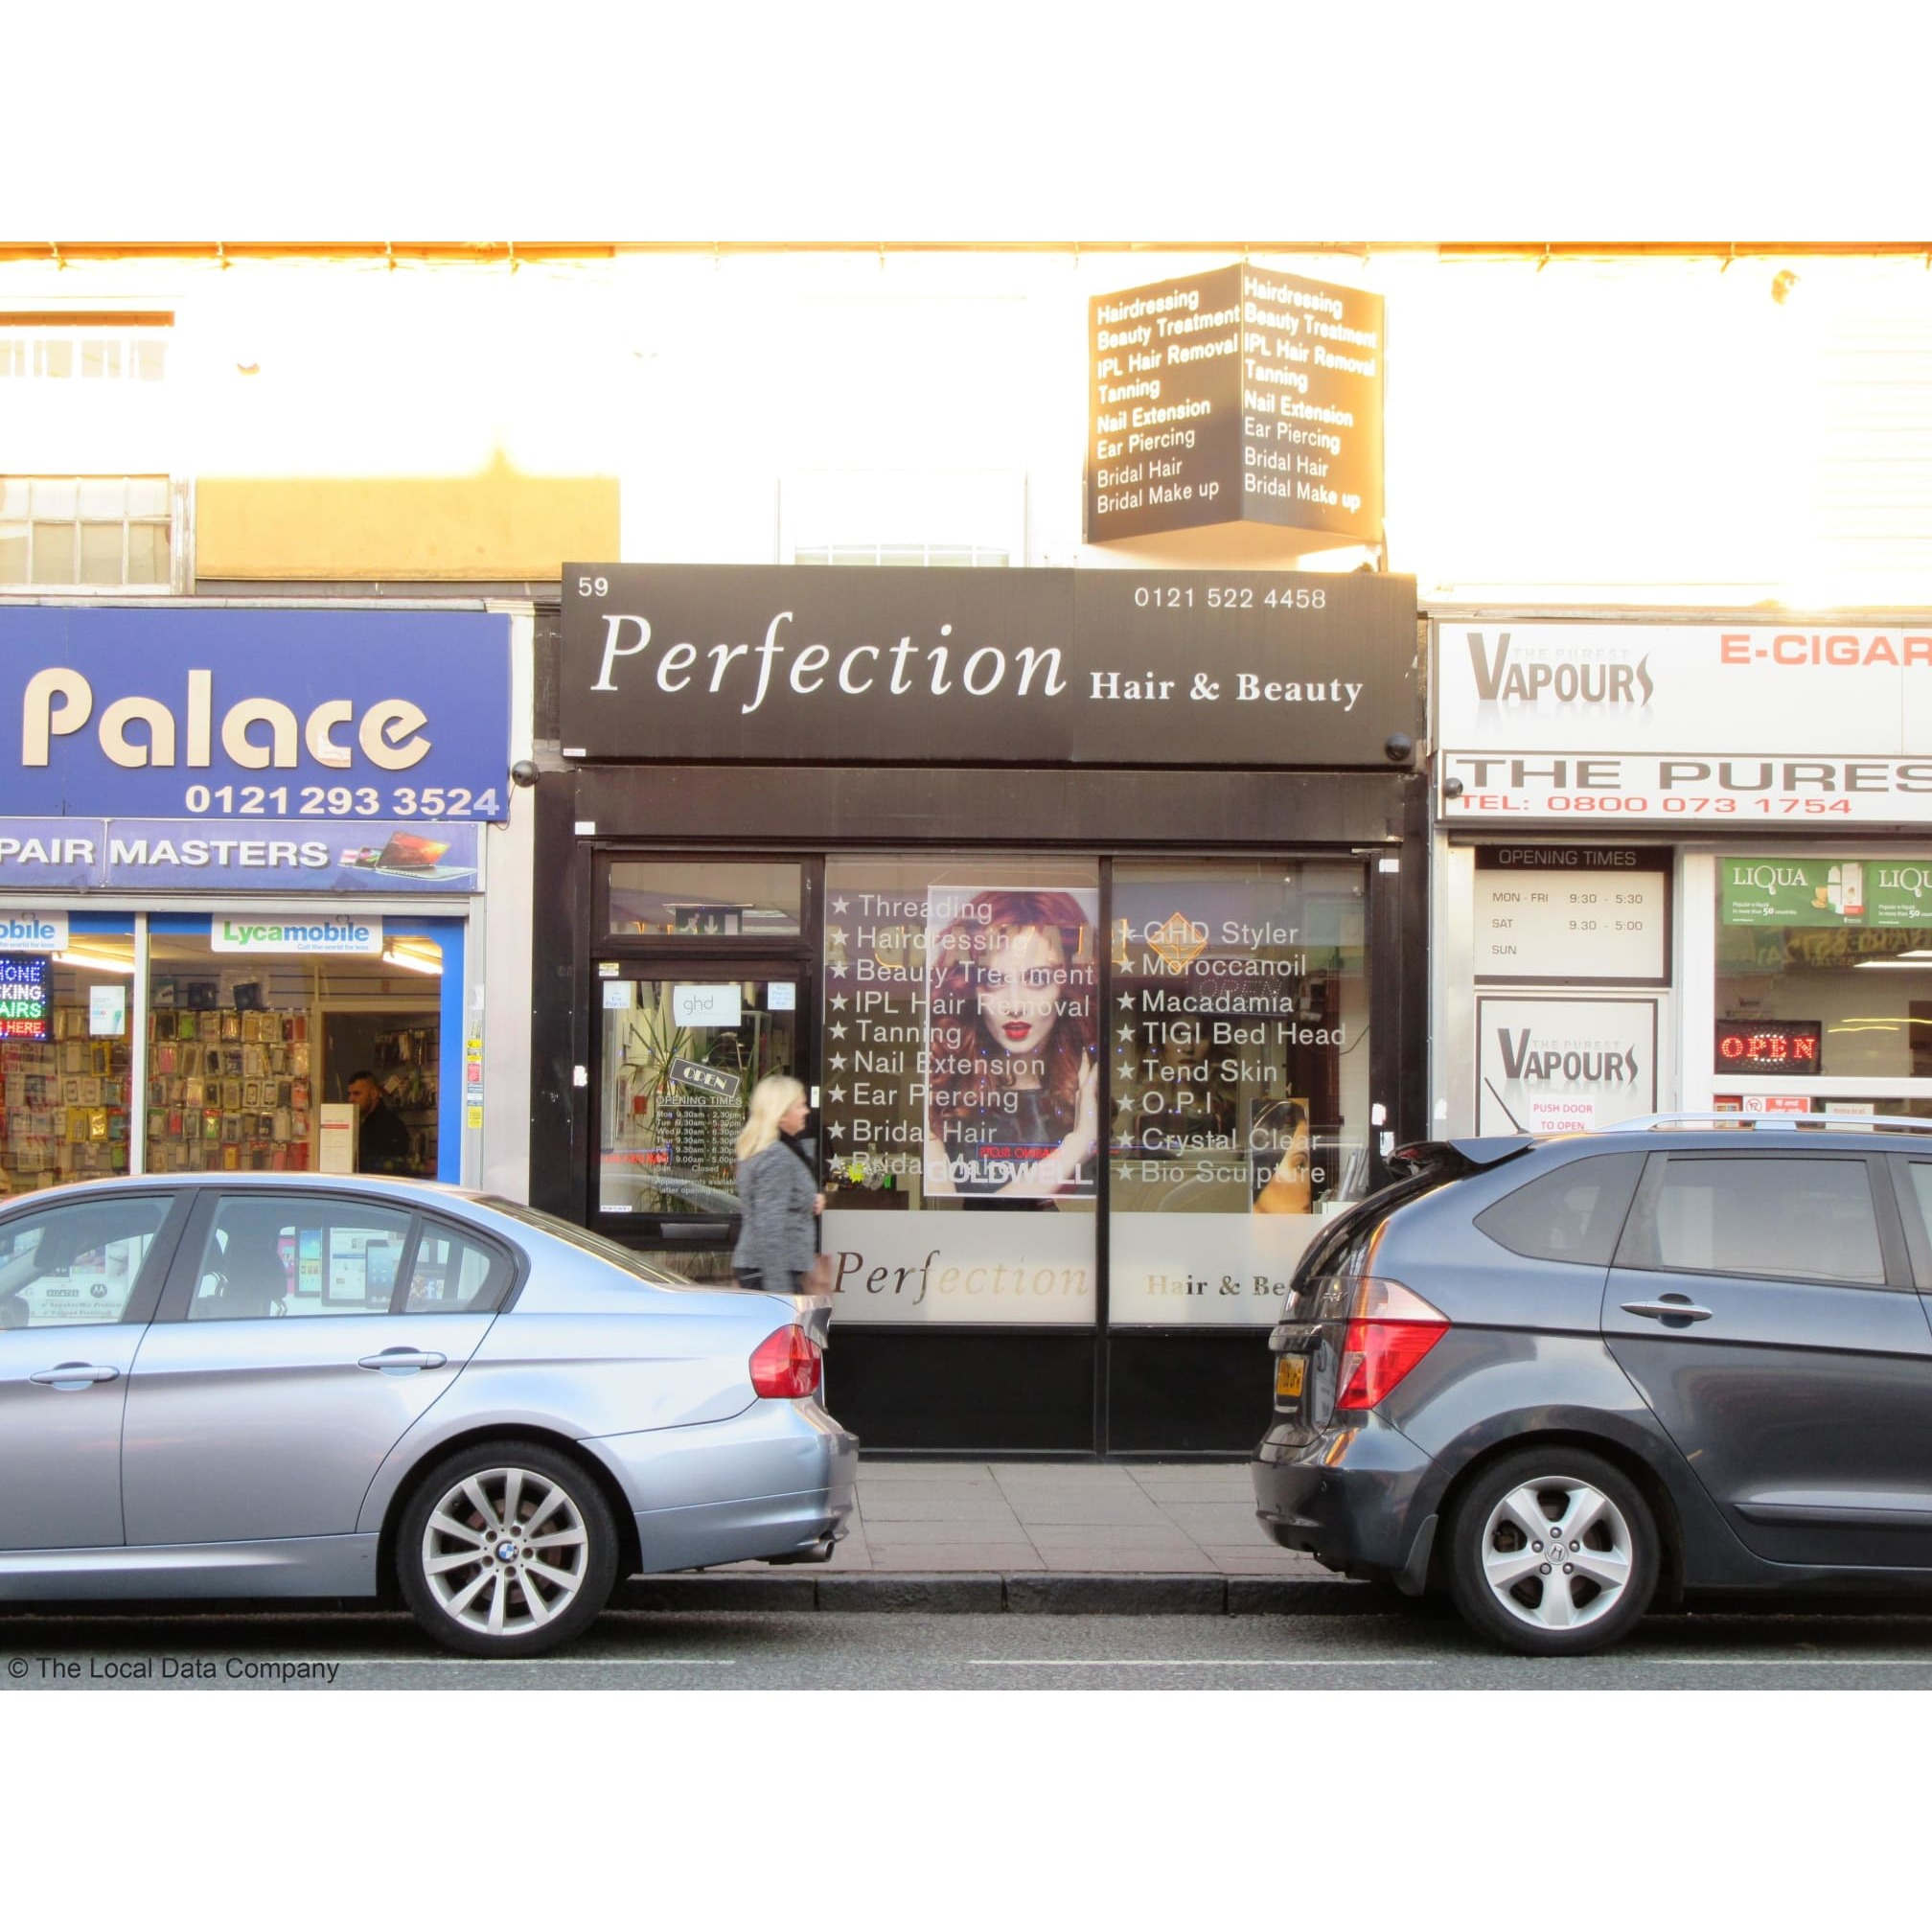 Perfection Hair & Beauty - Tipton, West Midlands DY4 7HF - 01215 224458 | ShowMeLocal.com